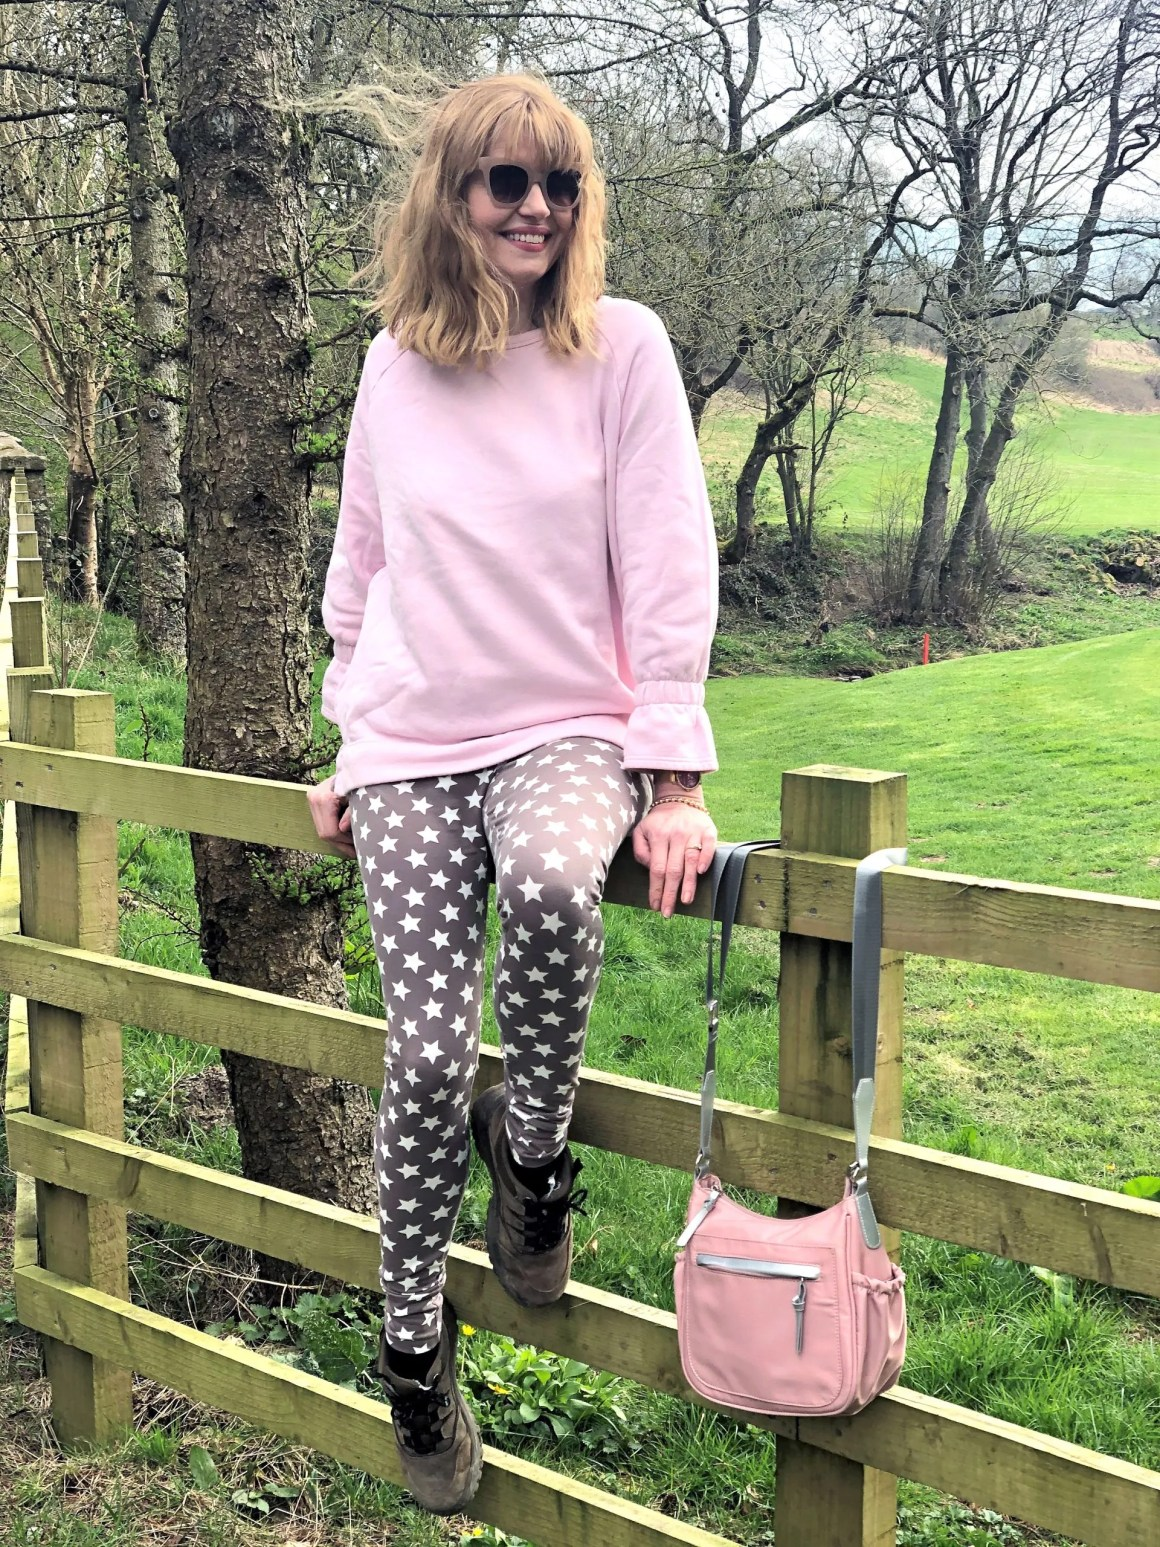 woman sitting on gate wearing star leggings and pink top